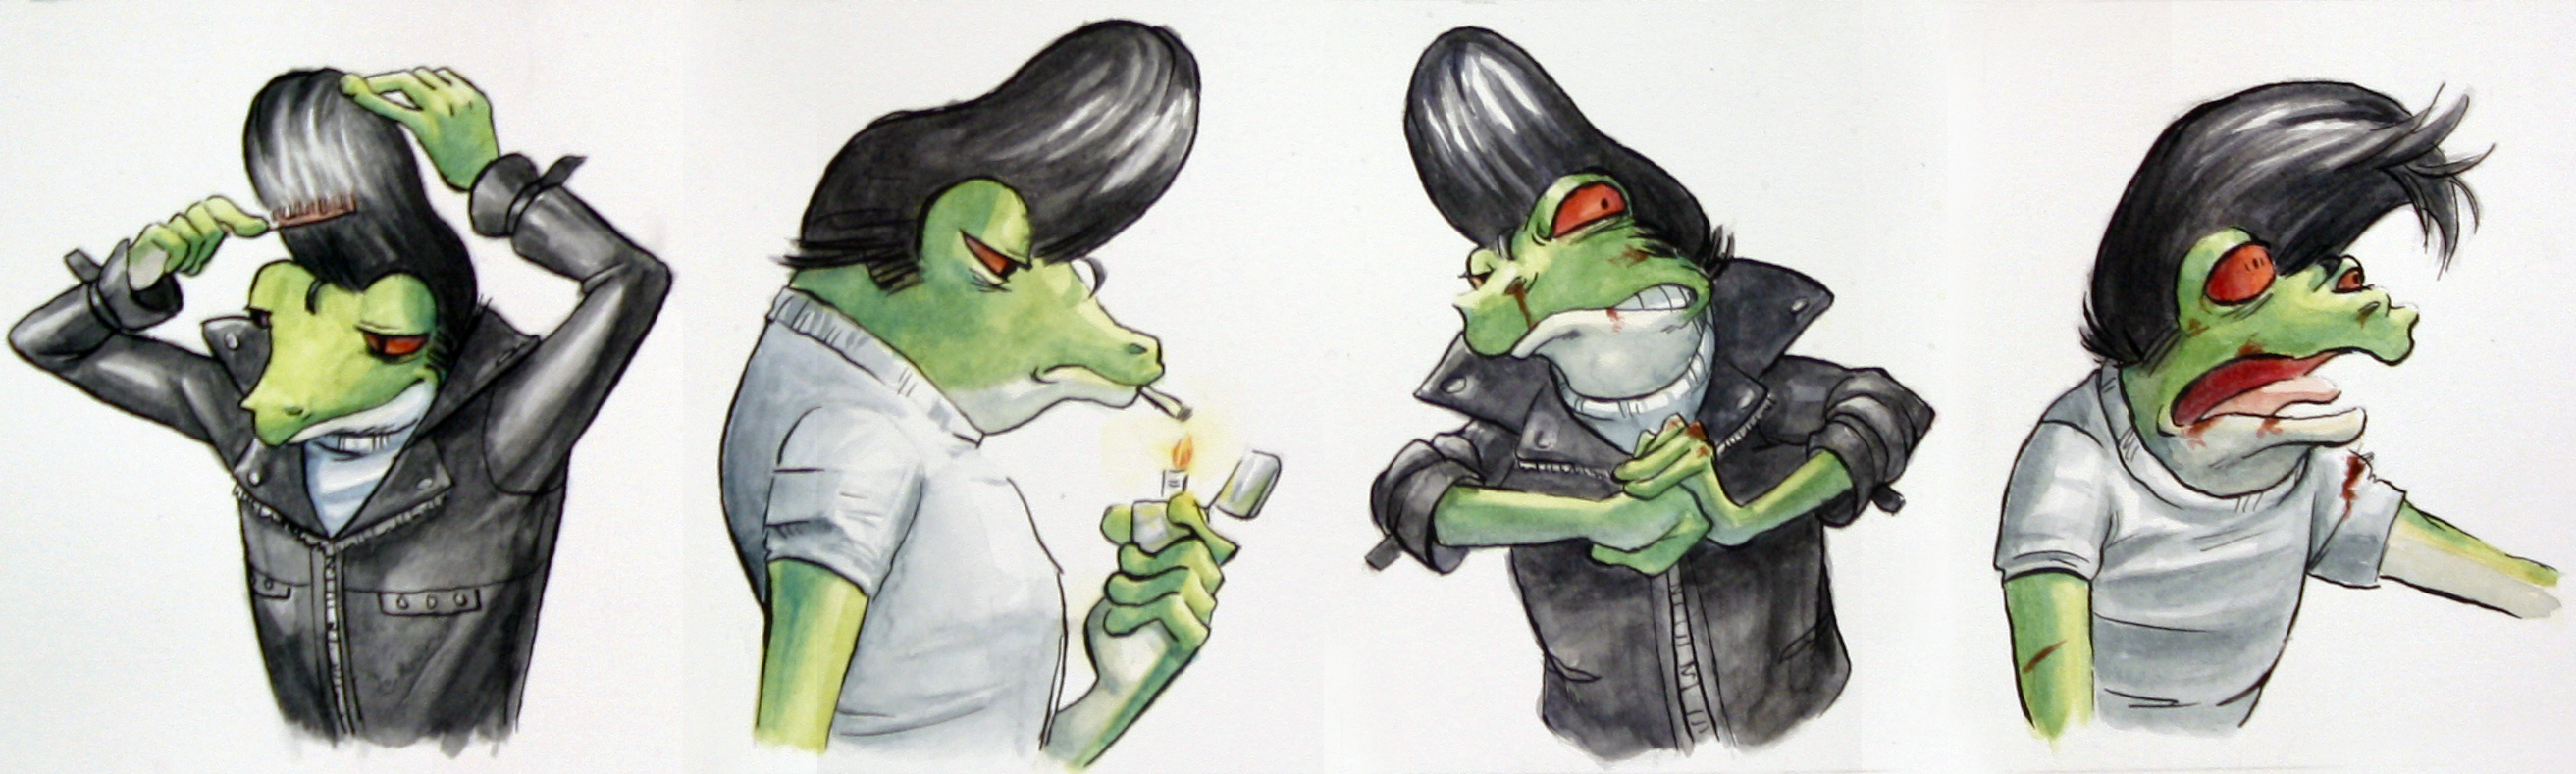 Greaser Frog Head Studies by Ah-Leeza